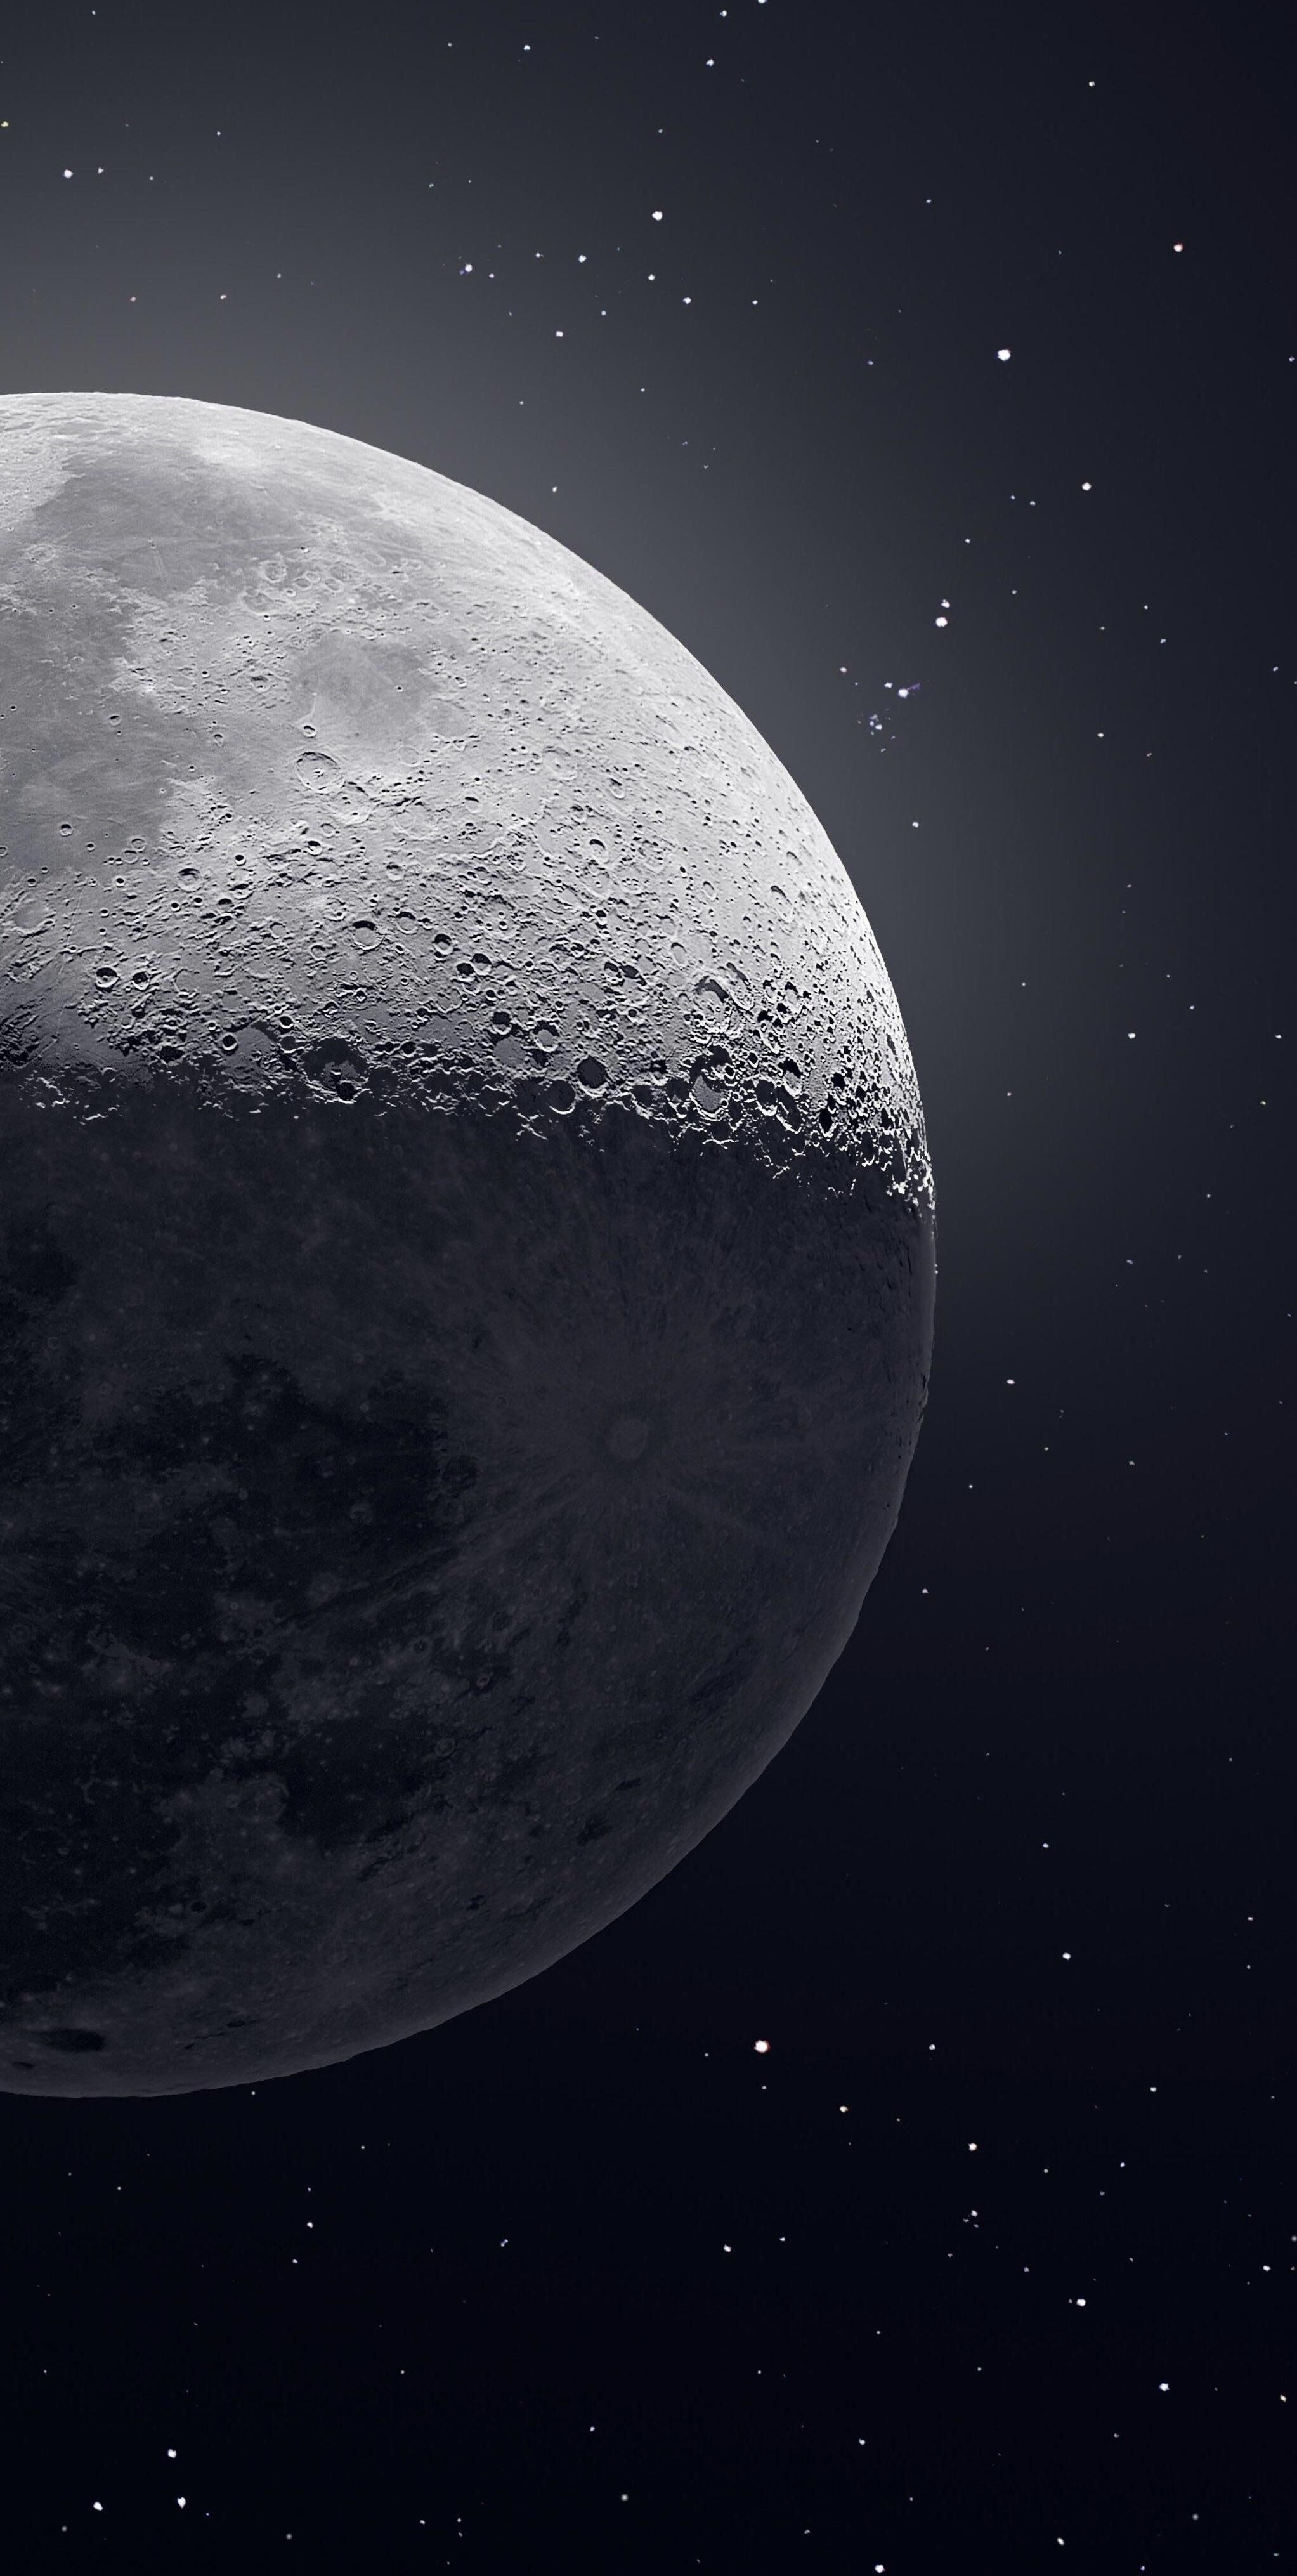 Cropped Moon Iphone X Wallpapers Iphonexwallpaperfullhd Iphonexwallpaperhd1080p Iphonexwallp Iphone Wallpaper Moon Wallpaper Space Iphone Wallpaper Stars